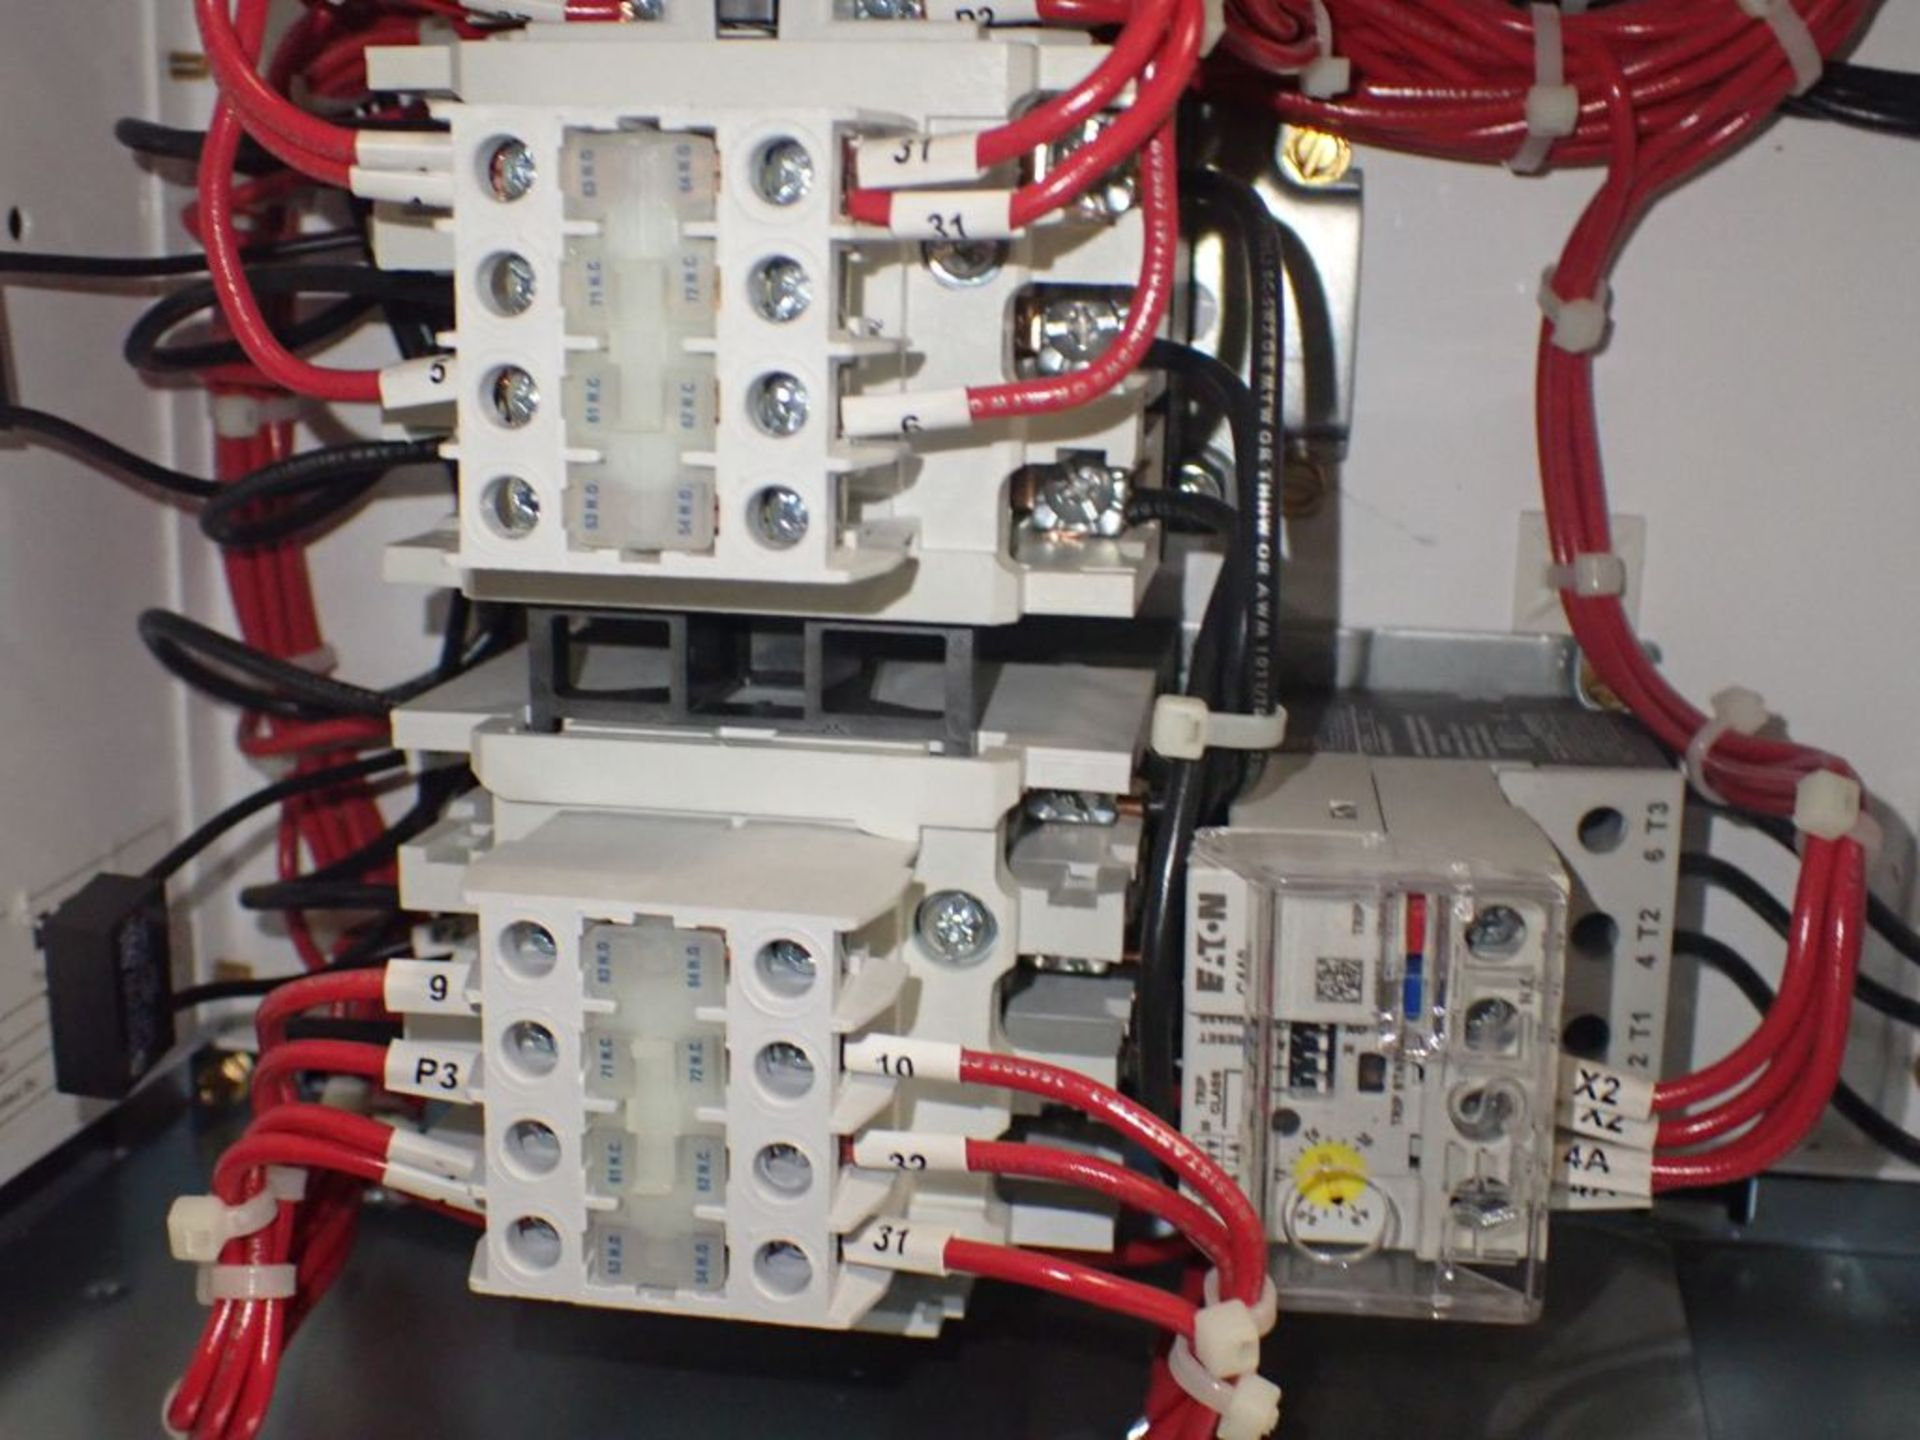 Eaton Freedom Flashgard Motor Control Center   (3) F216-15A-10HP; (1) FDRB-125A, with 150A - Image 20 of 57